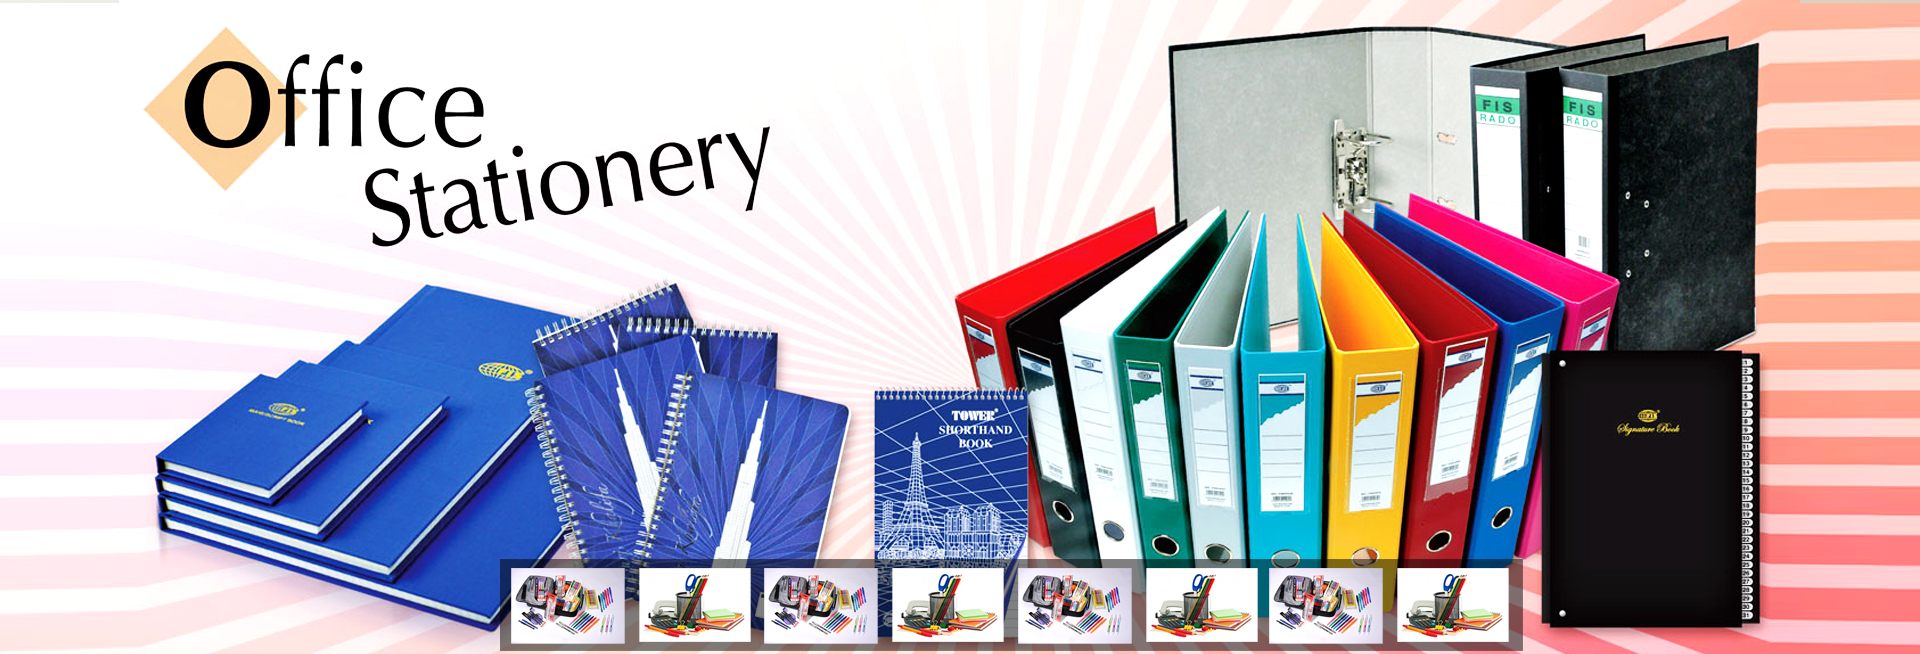 How to keep Office Stationery under Budget